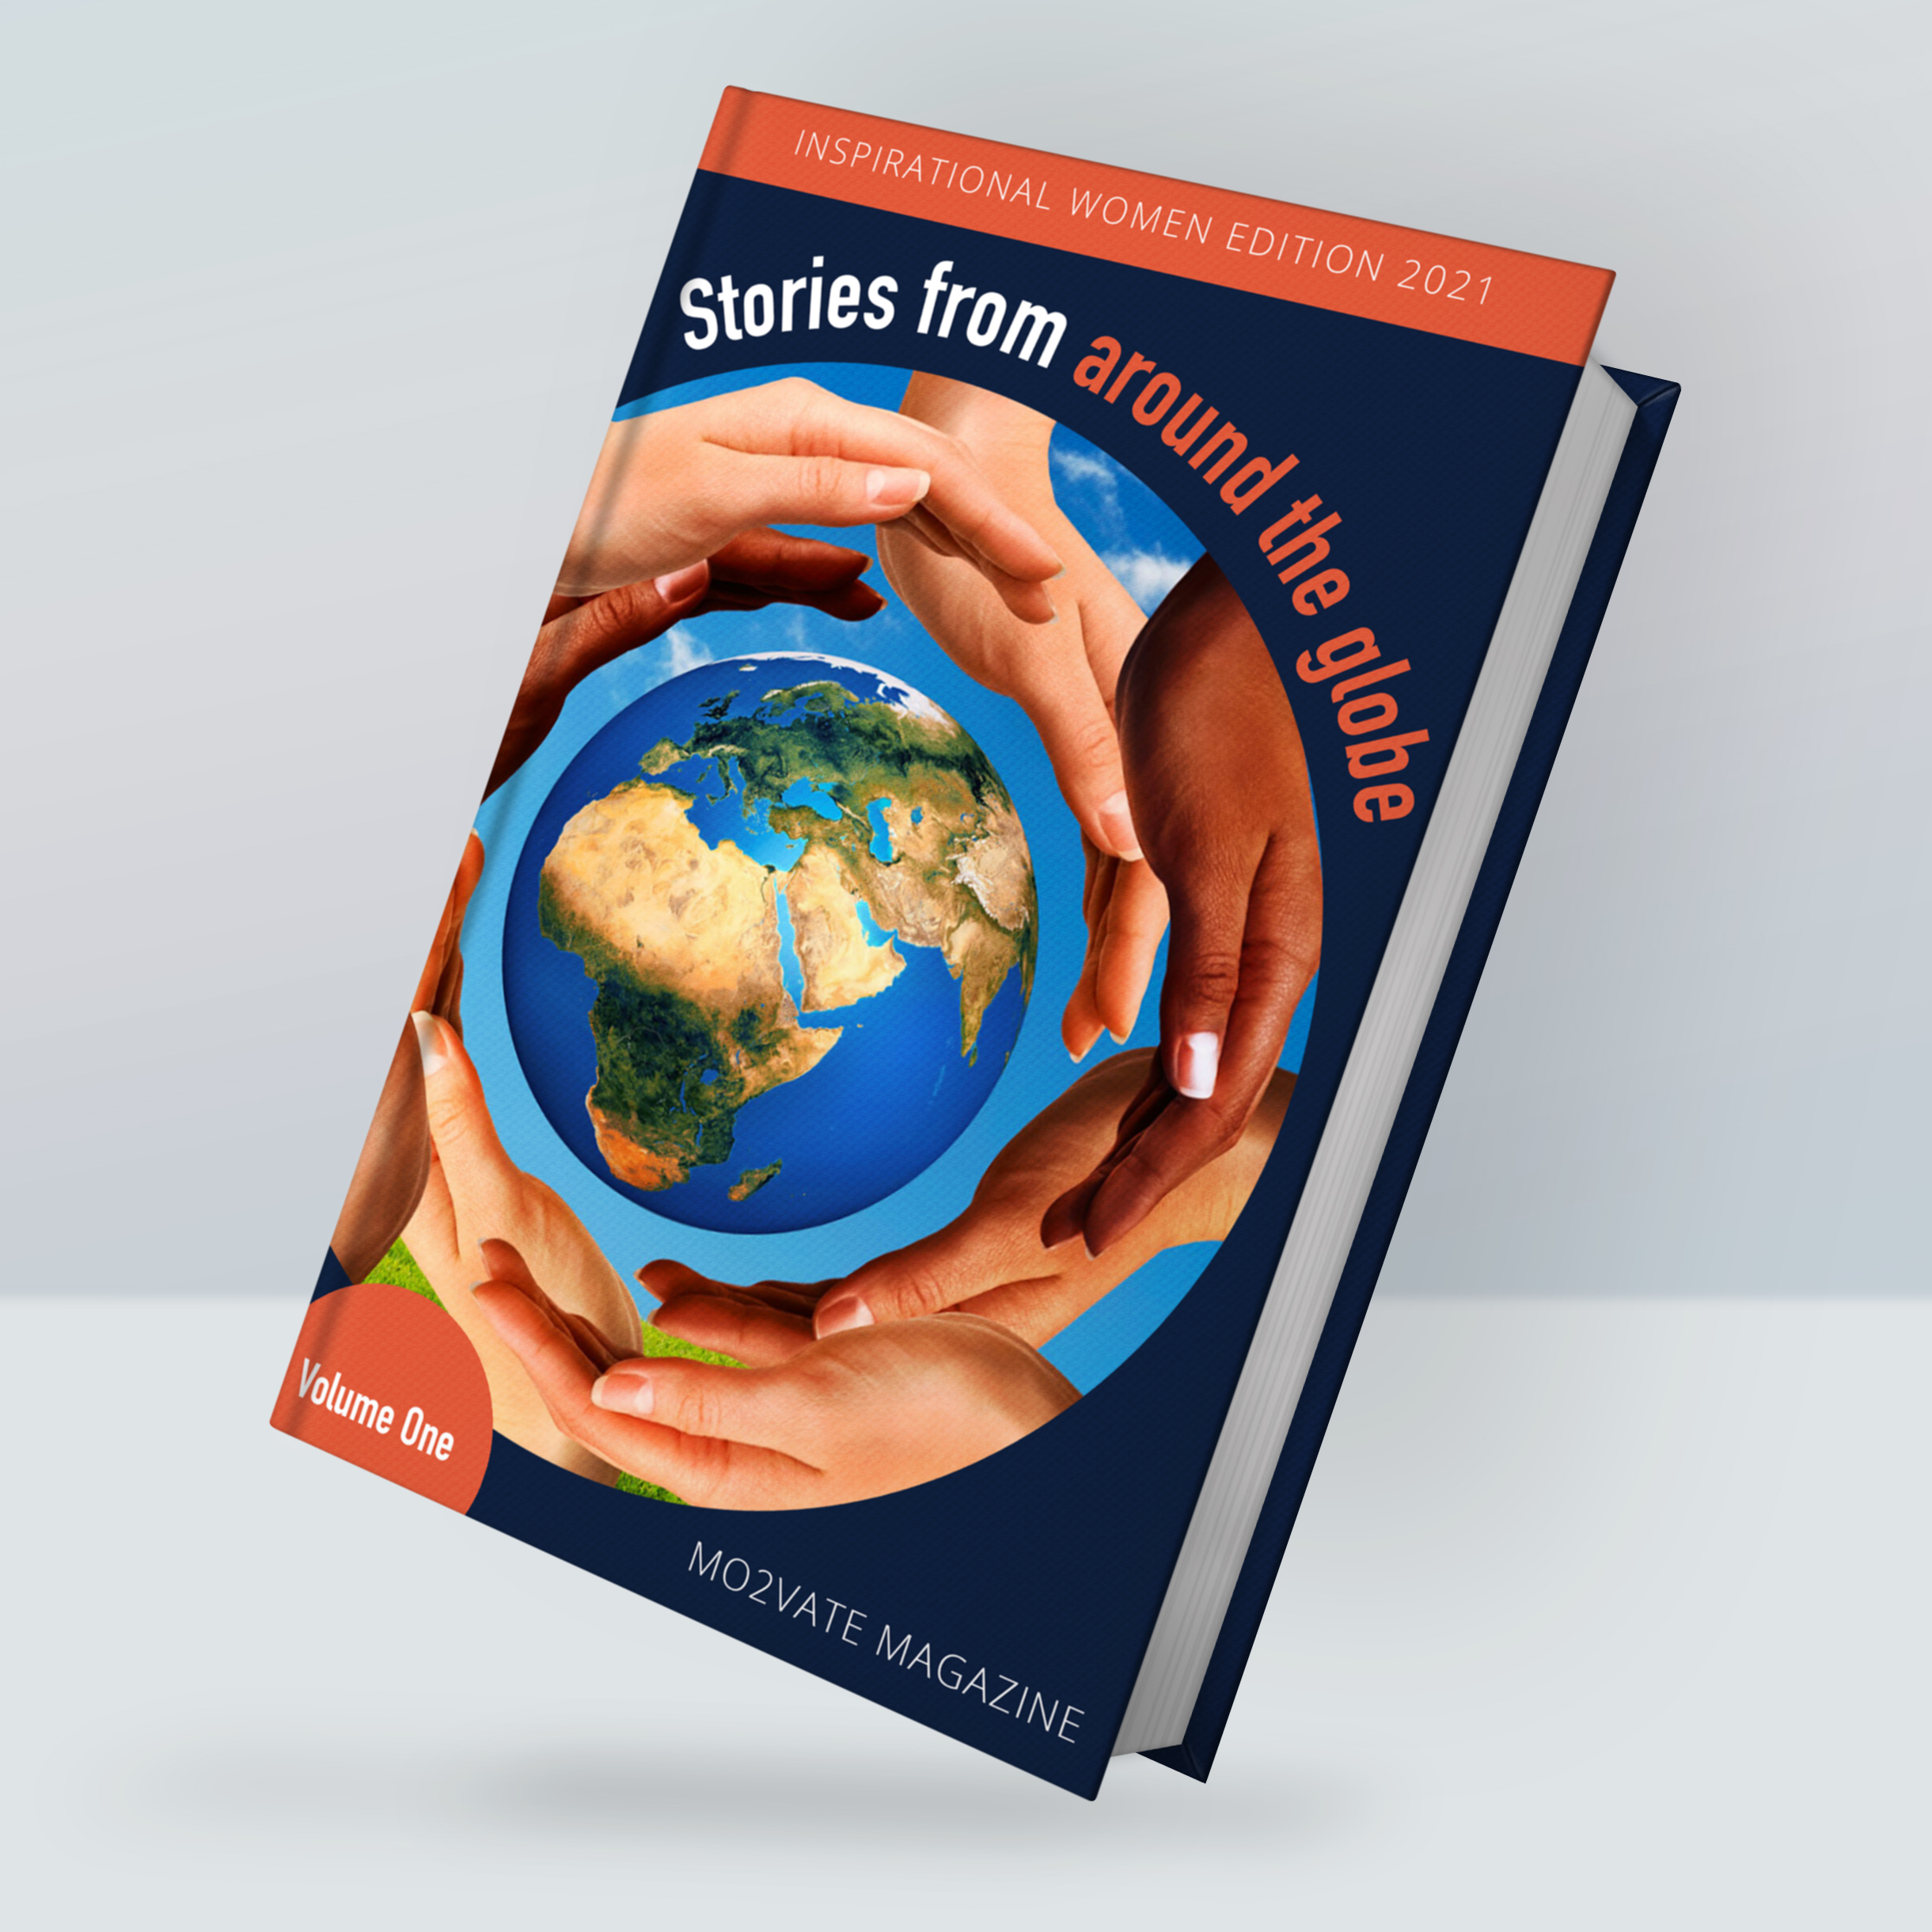 Stories Book Cover Mockup